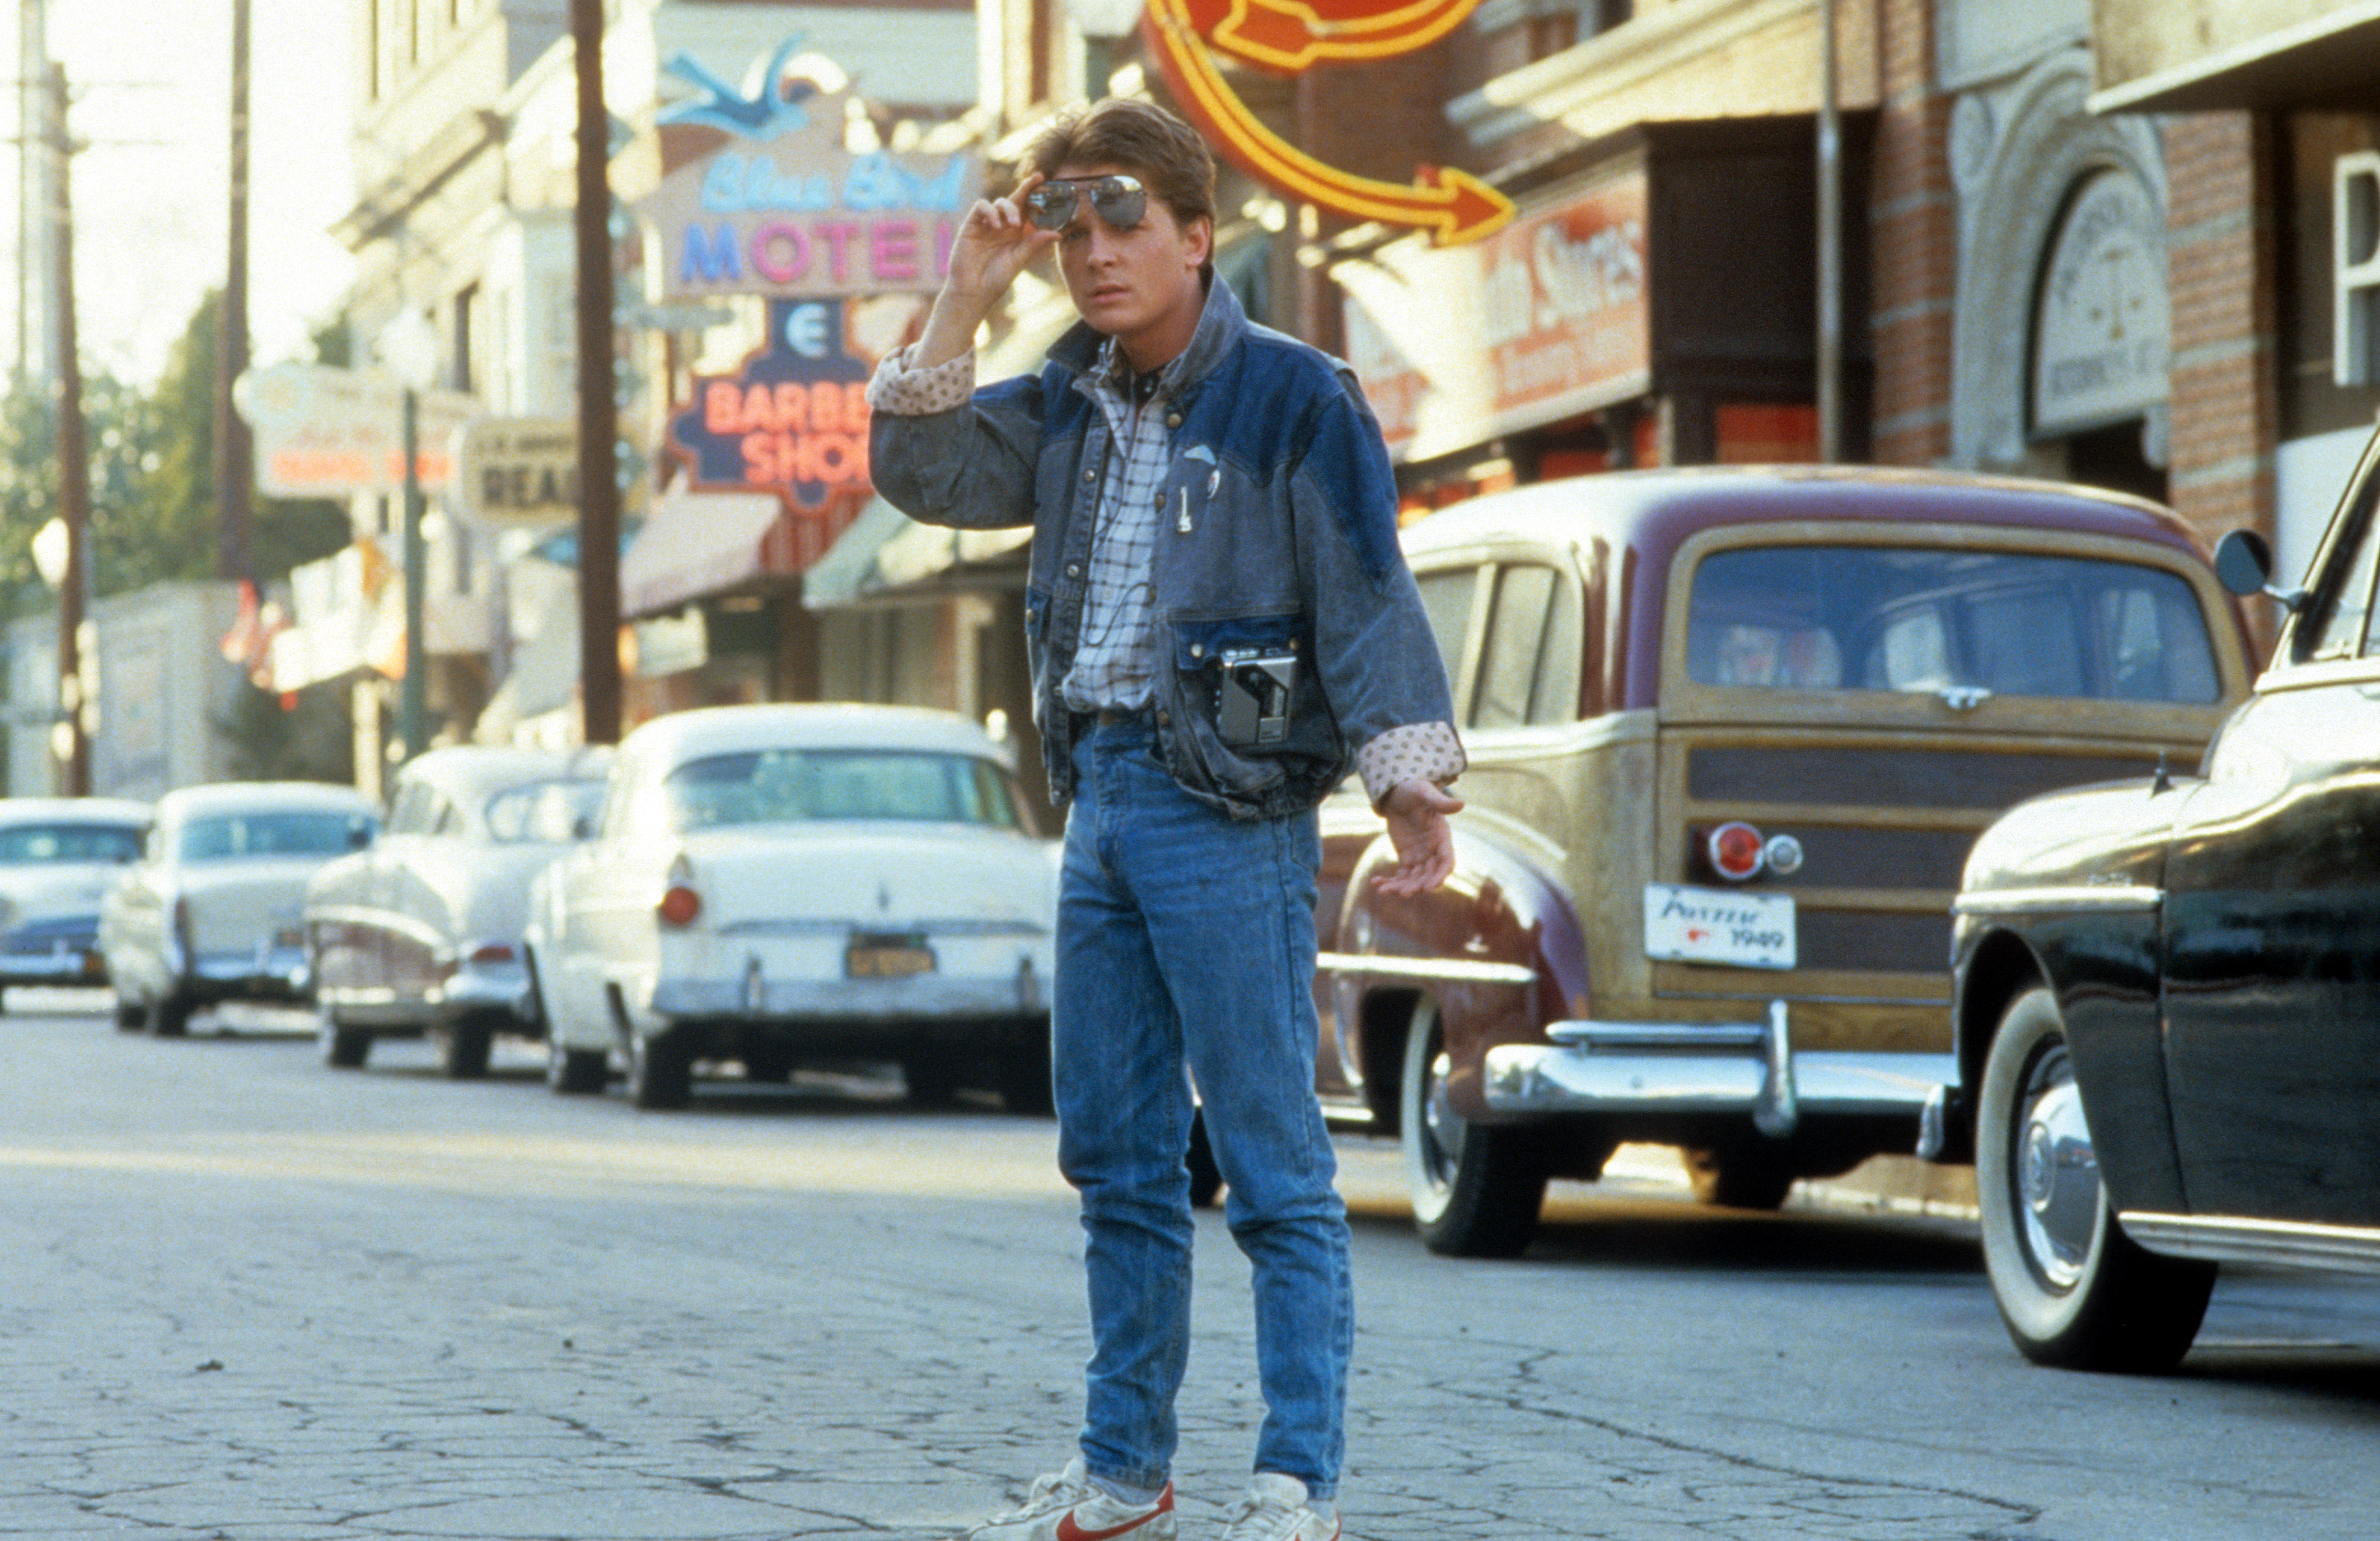 Michael J Fox walking across the street in a scene from the film 'Back To The Future'.